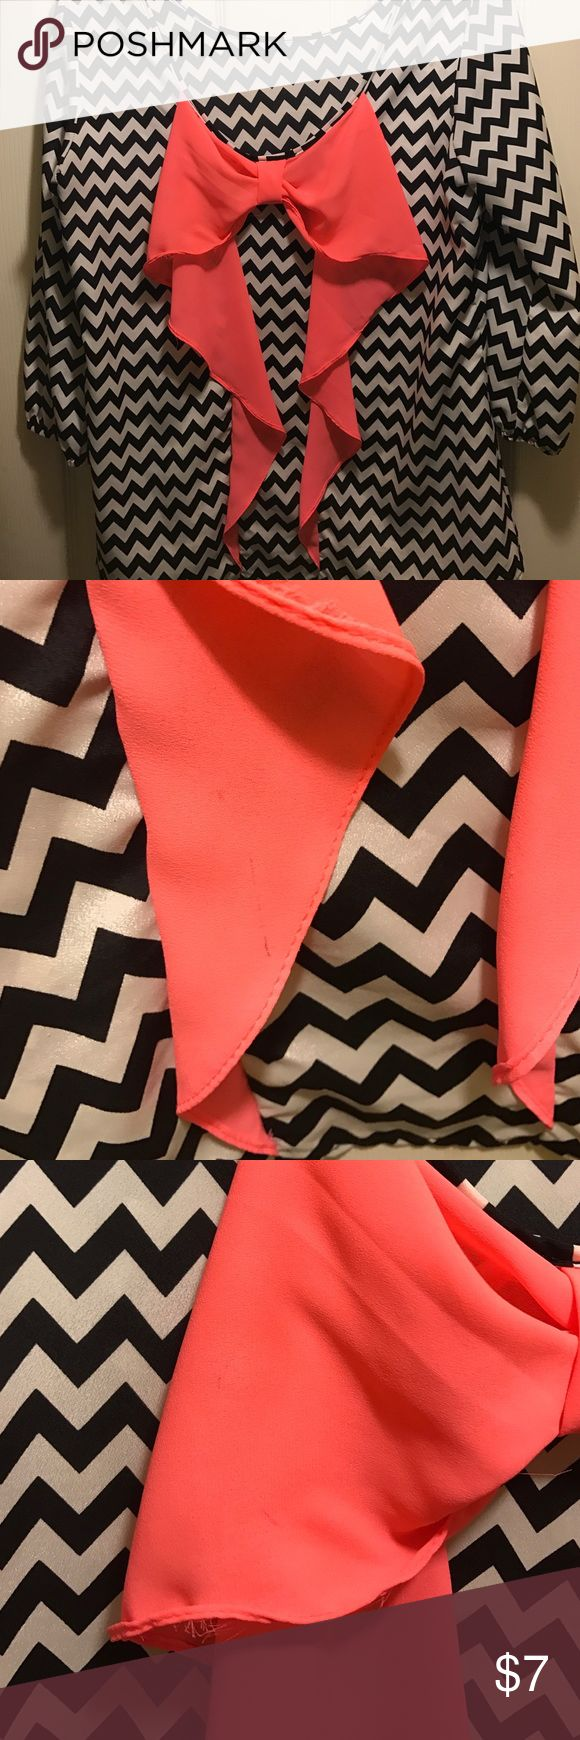 Black and white chevron shirt Chevron shirt with an orange bow, has a few pen marks on it, but can still be worn, bow goes on back Tops